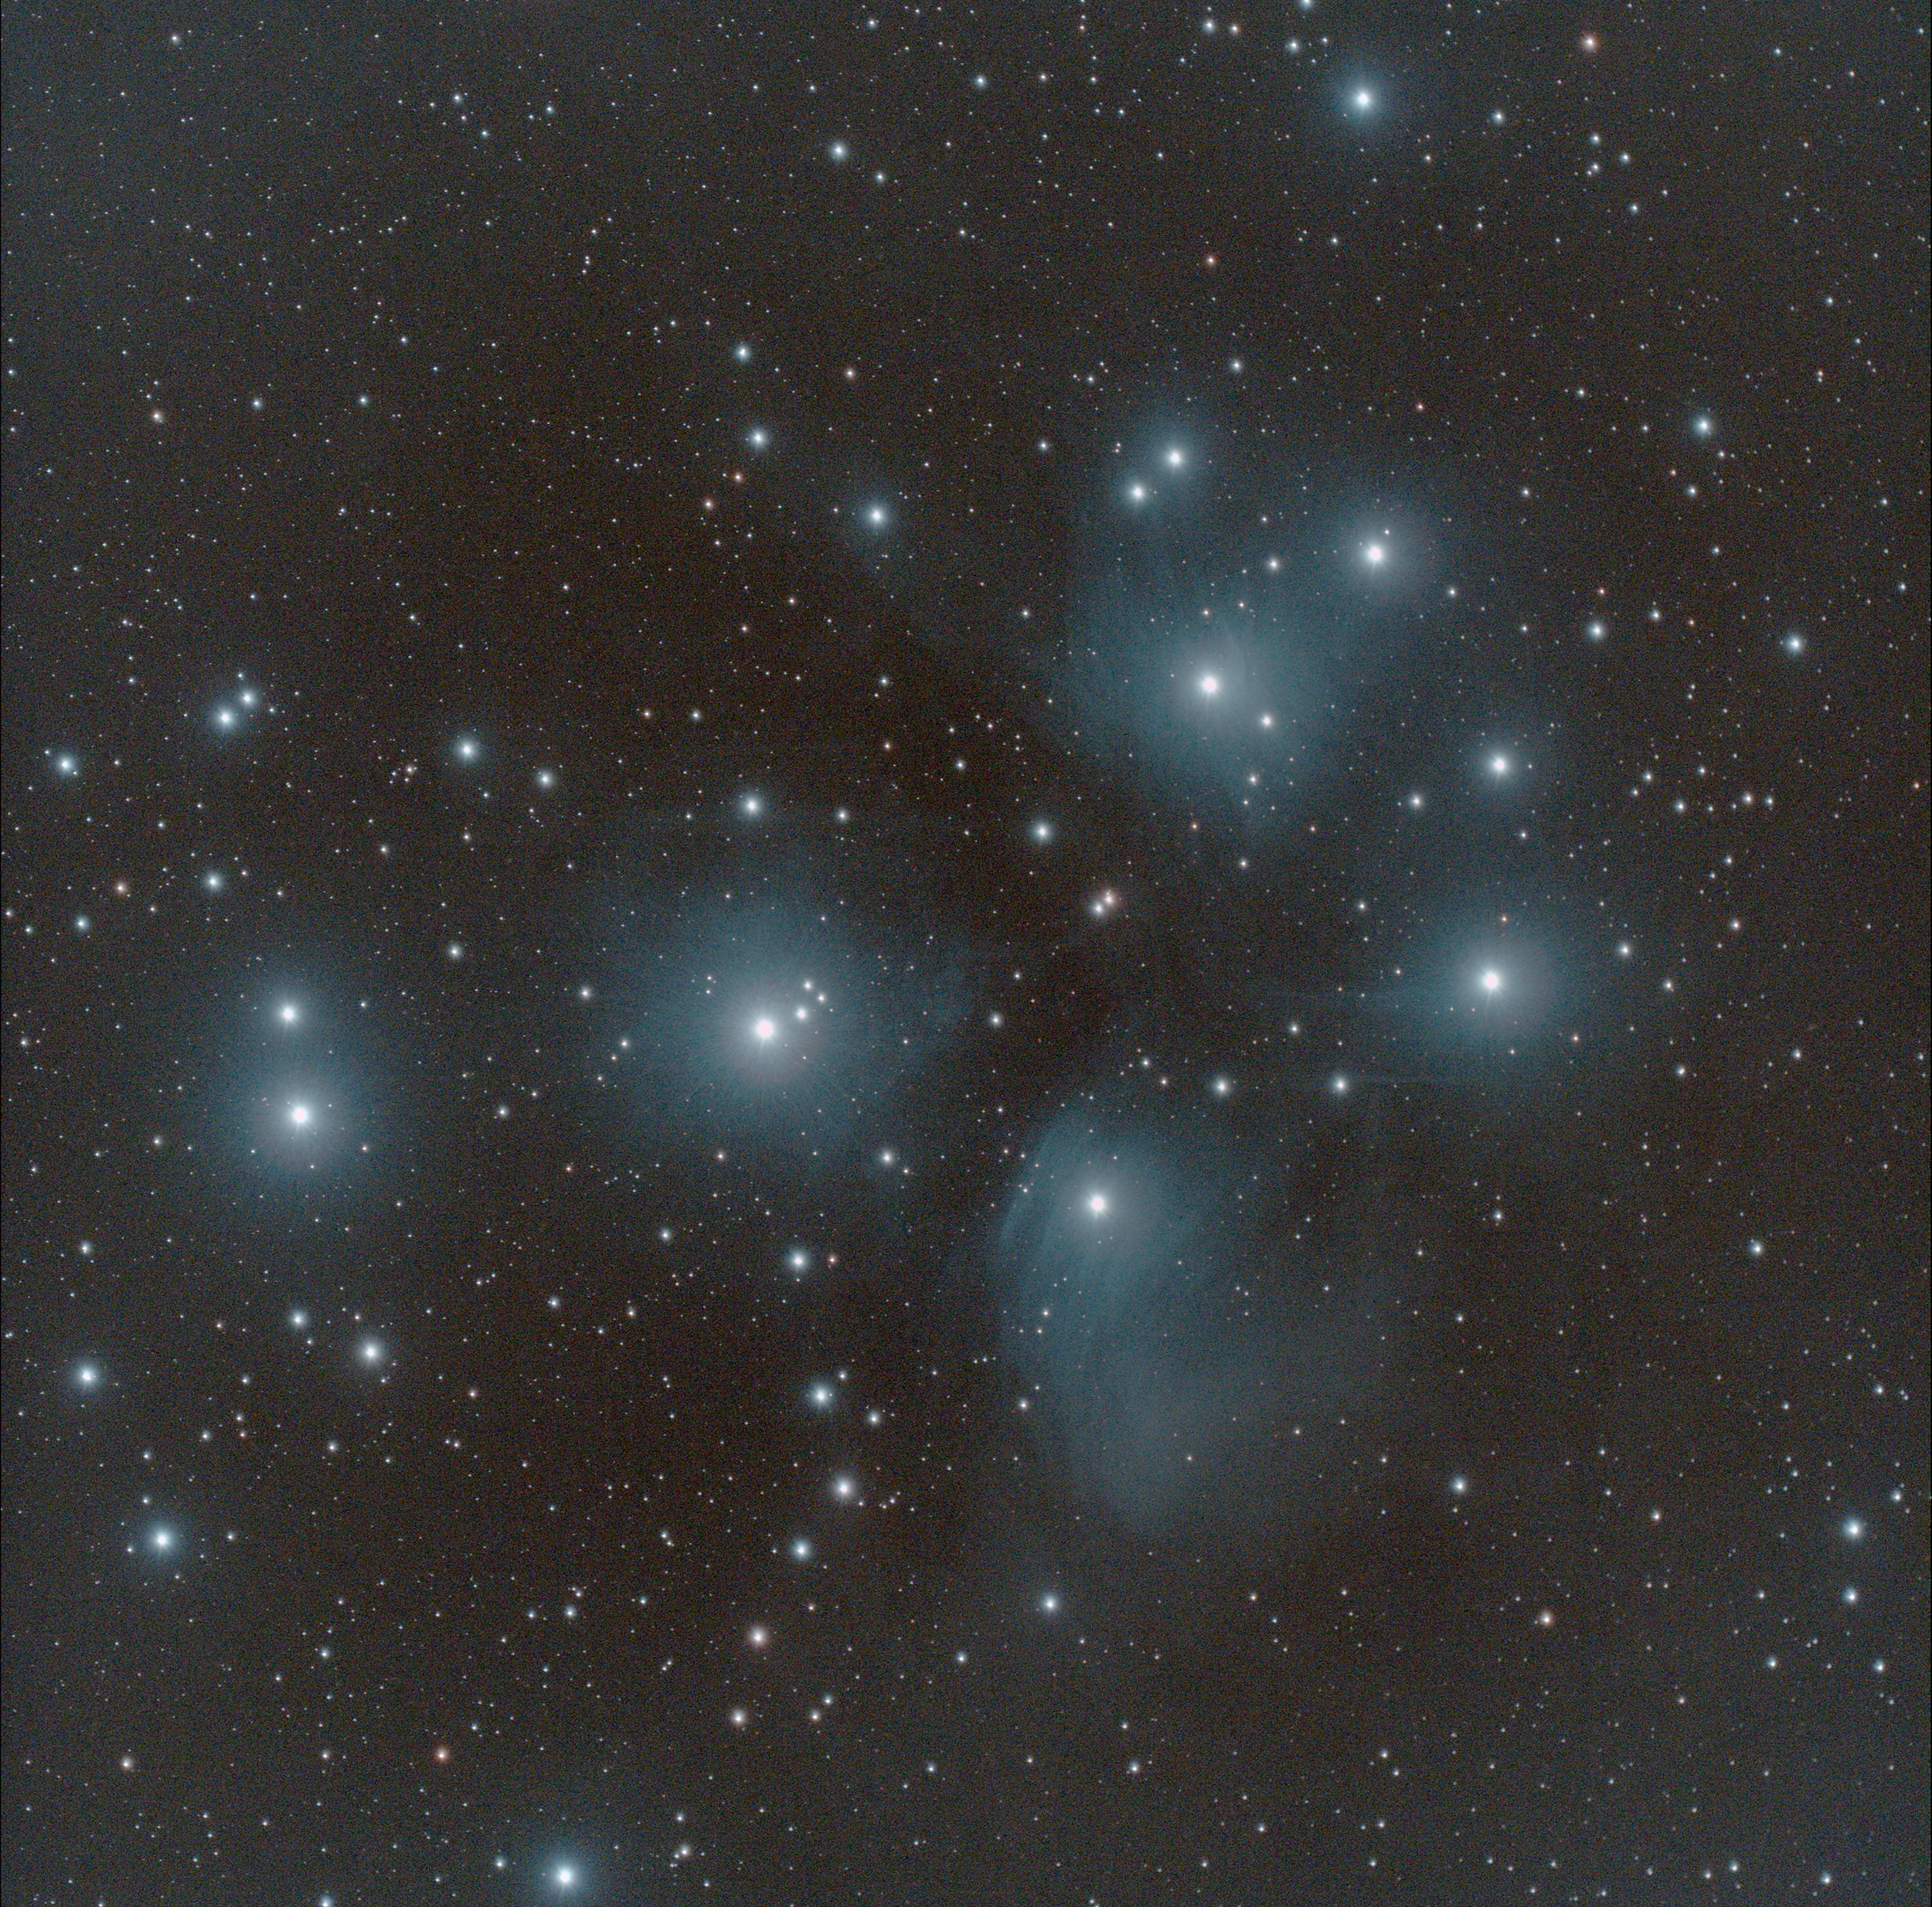 Clusters of jewels shining in the night sky - RocketSTEM